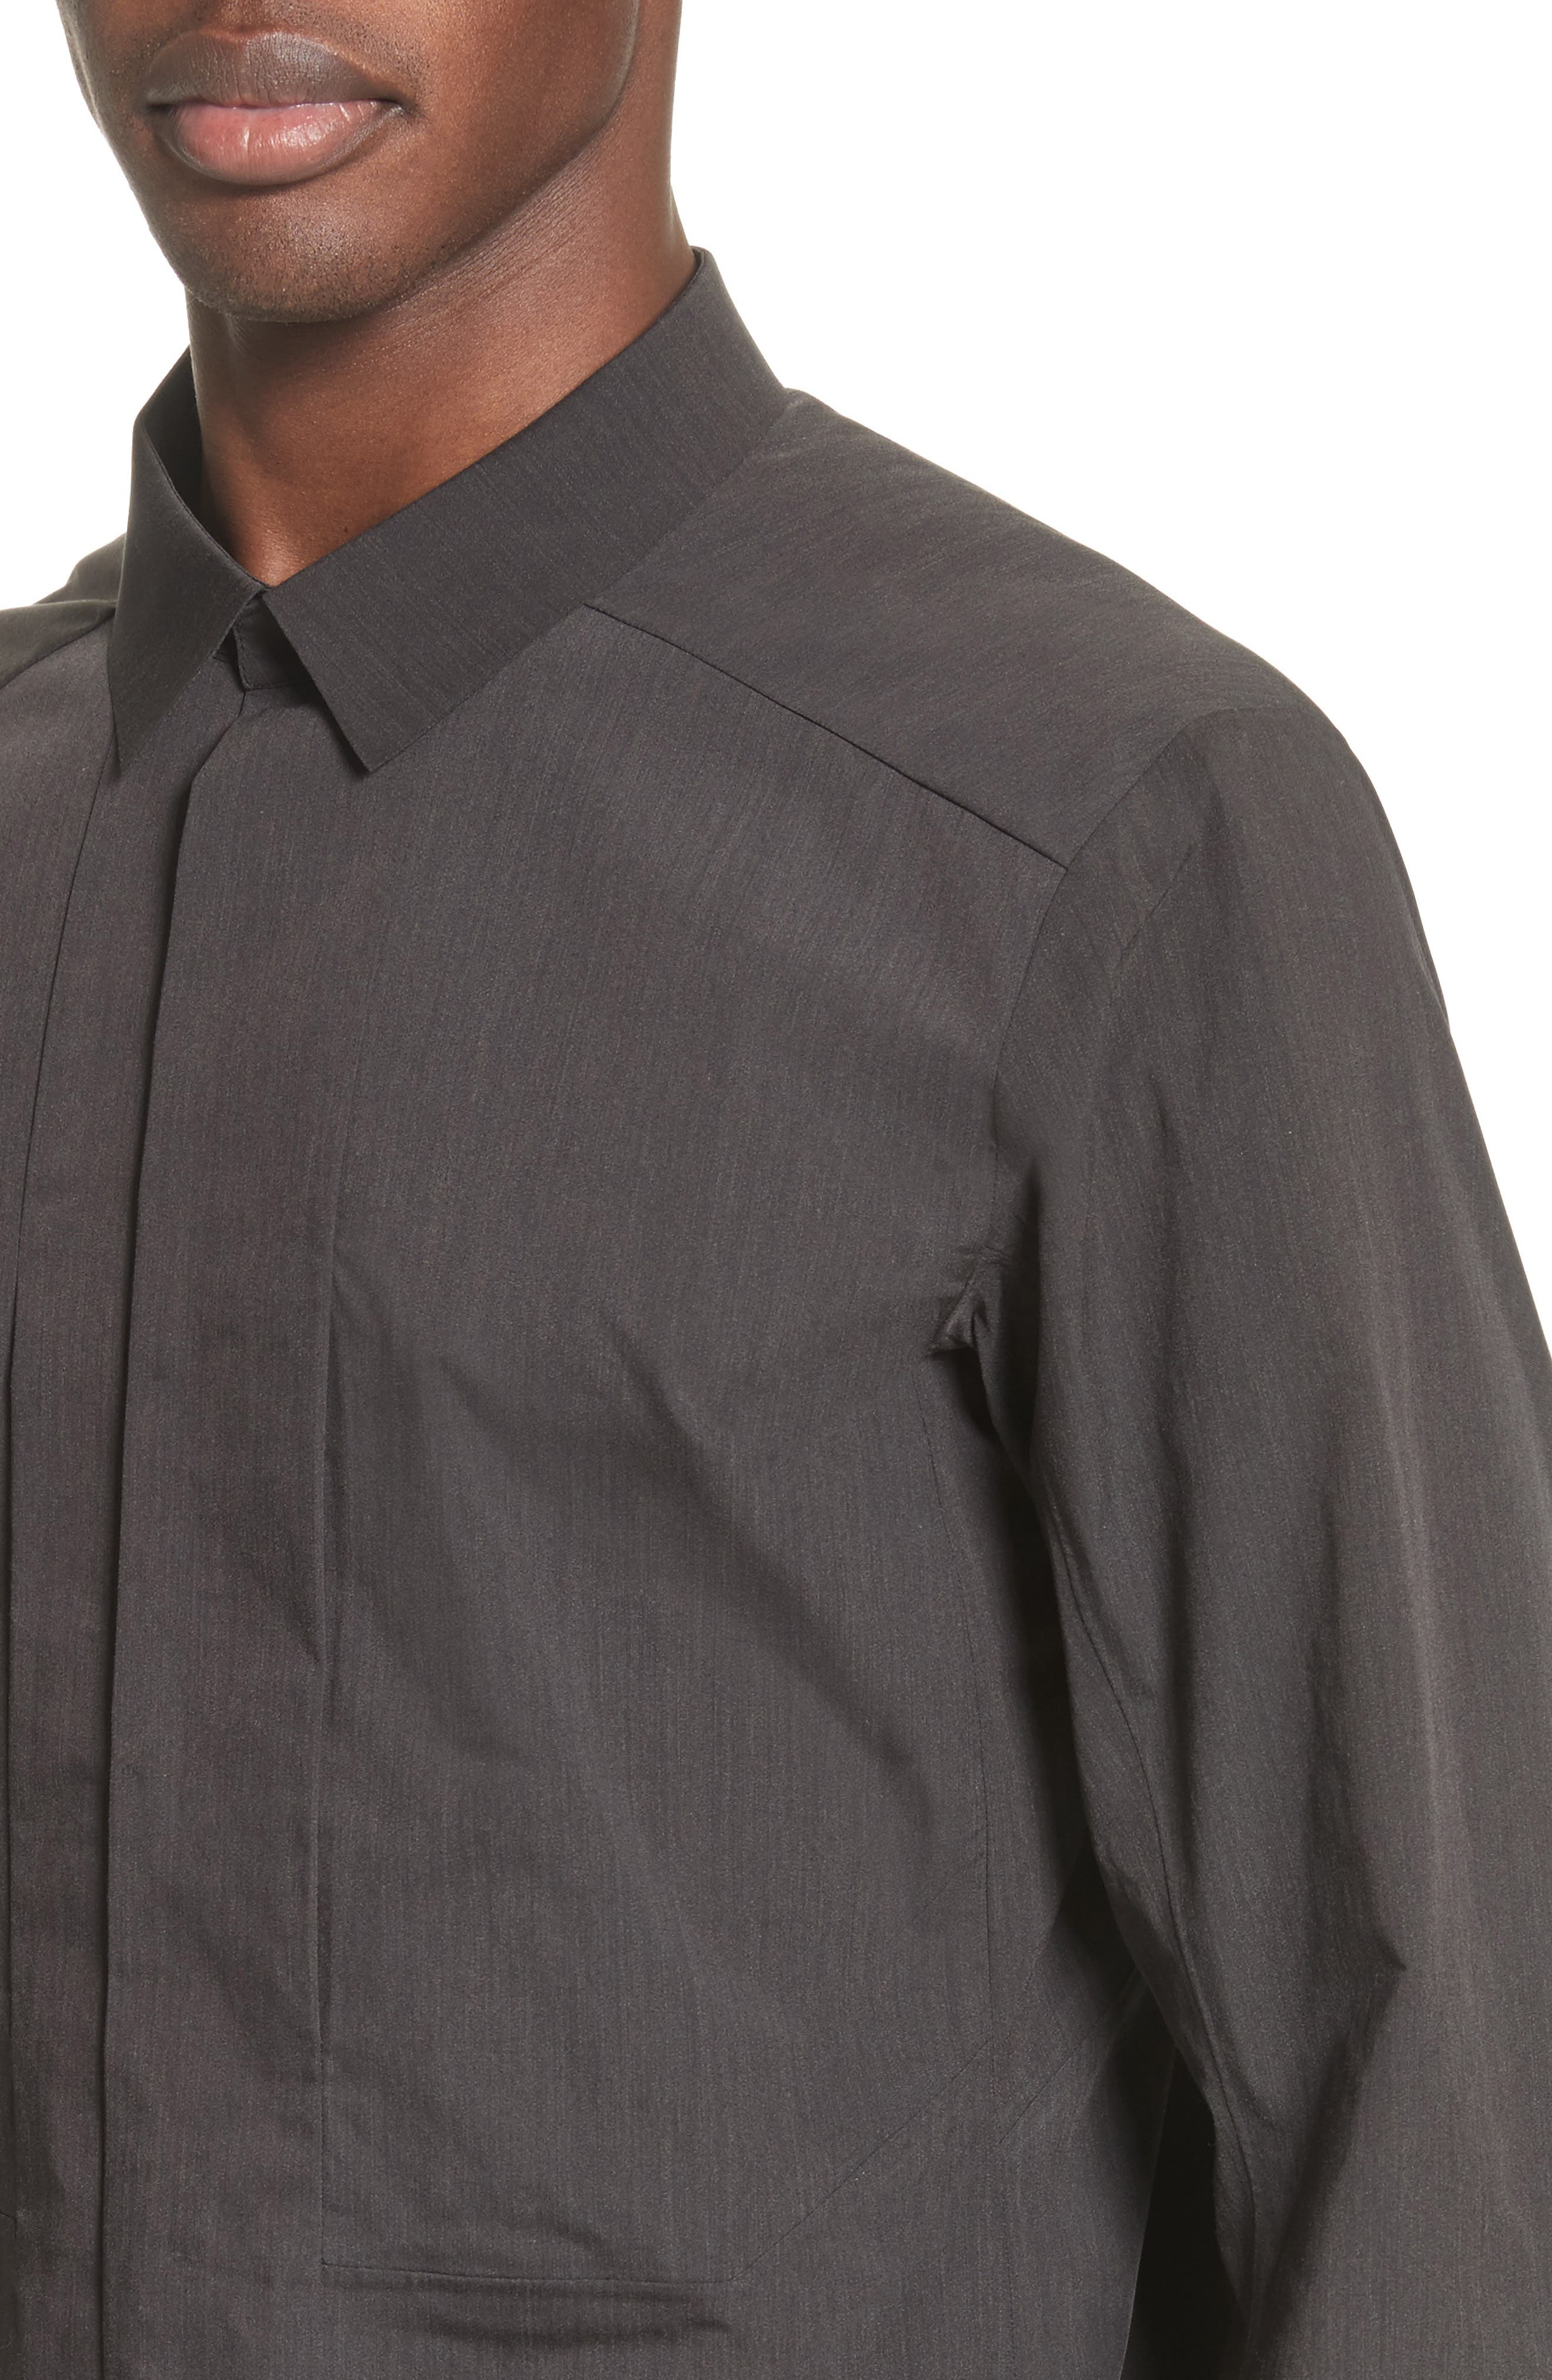 Operand Utility Shirt,                             Alternate thumbnail 5, color,                             001